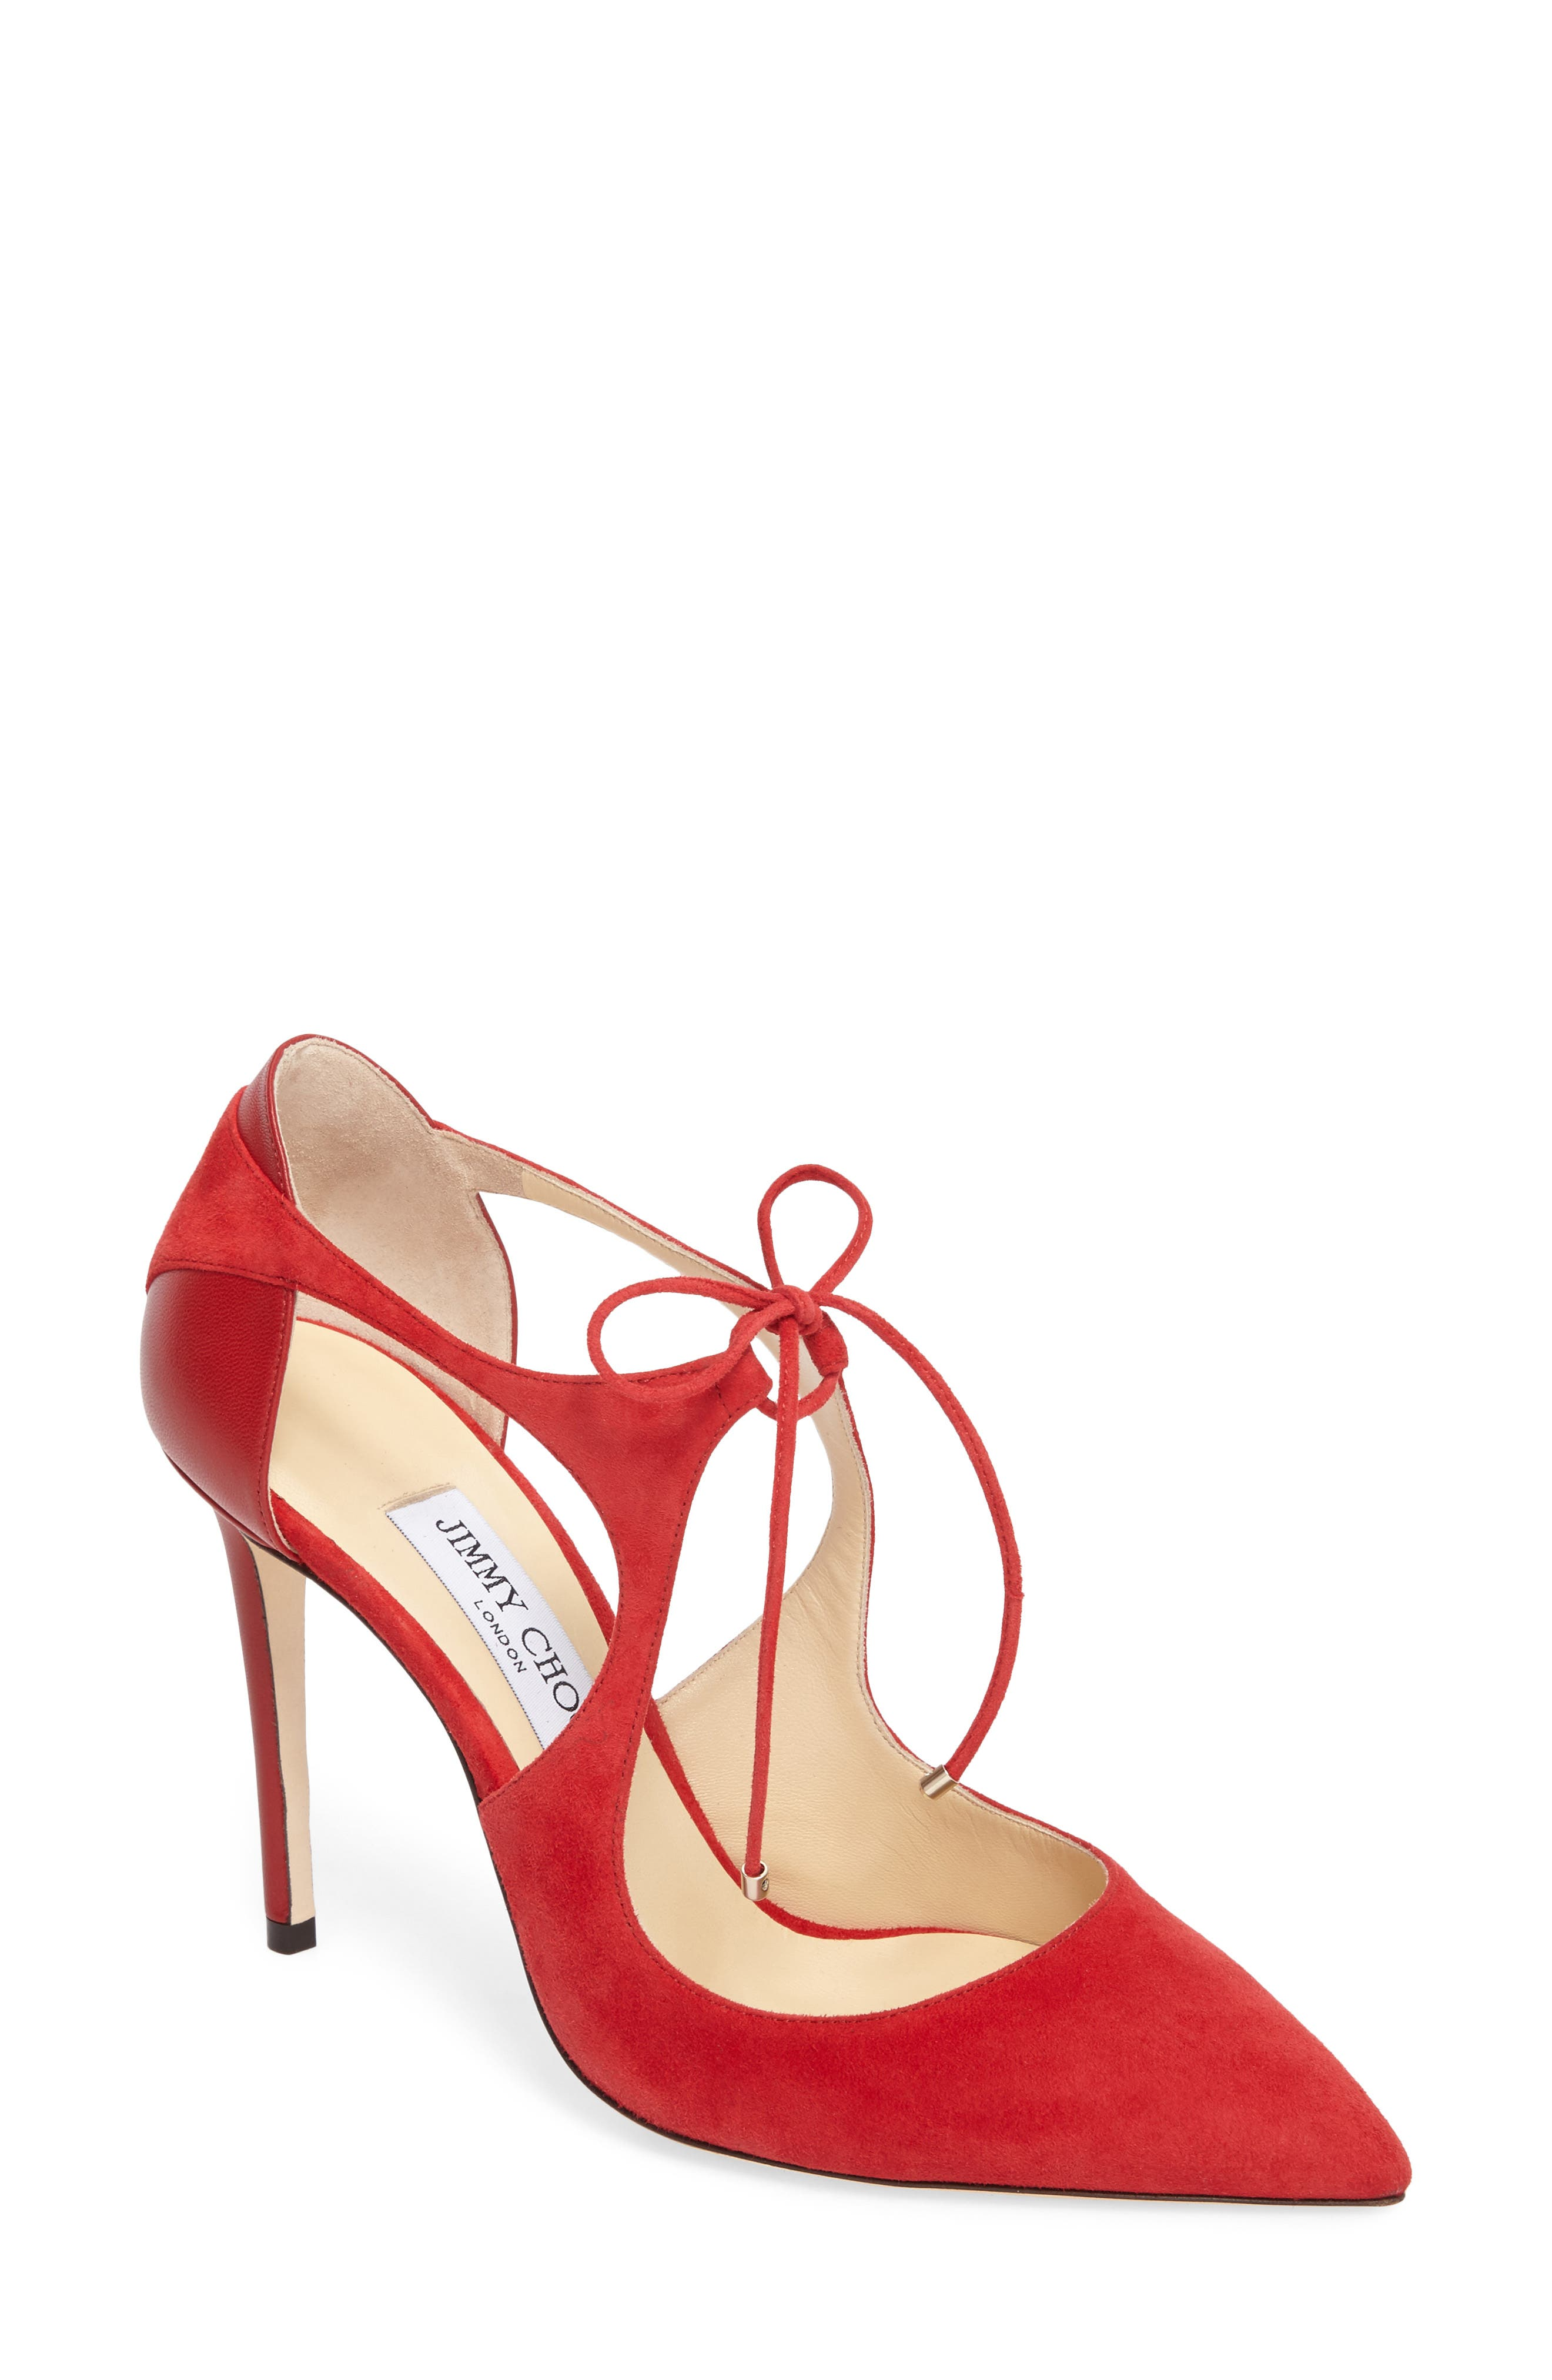 Vanessa Tie Front Pump,                         Main,                         color, Red/ Red